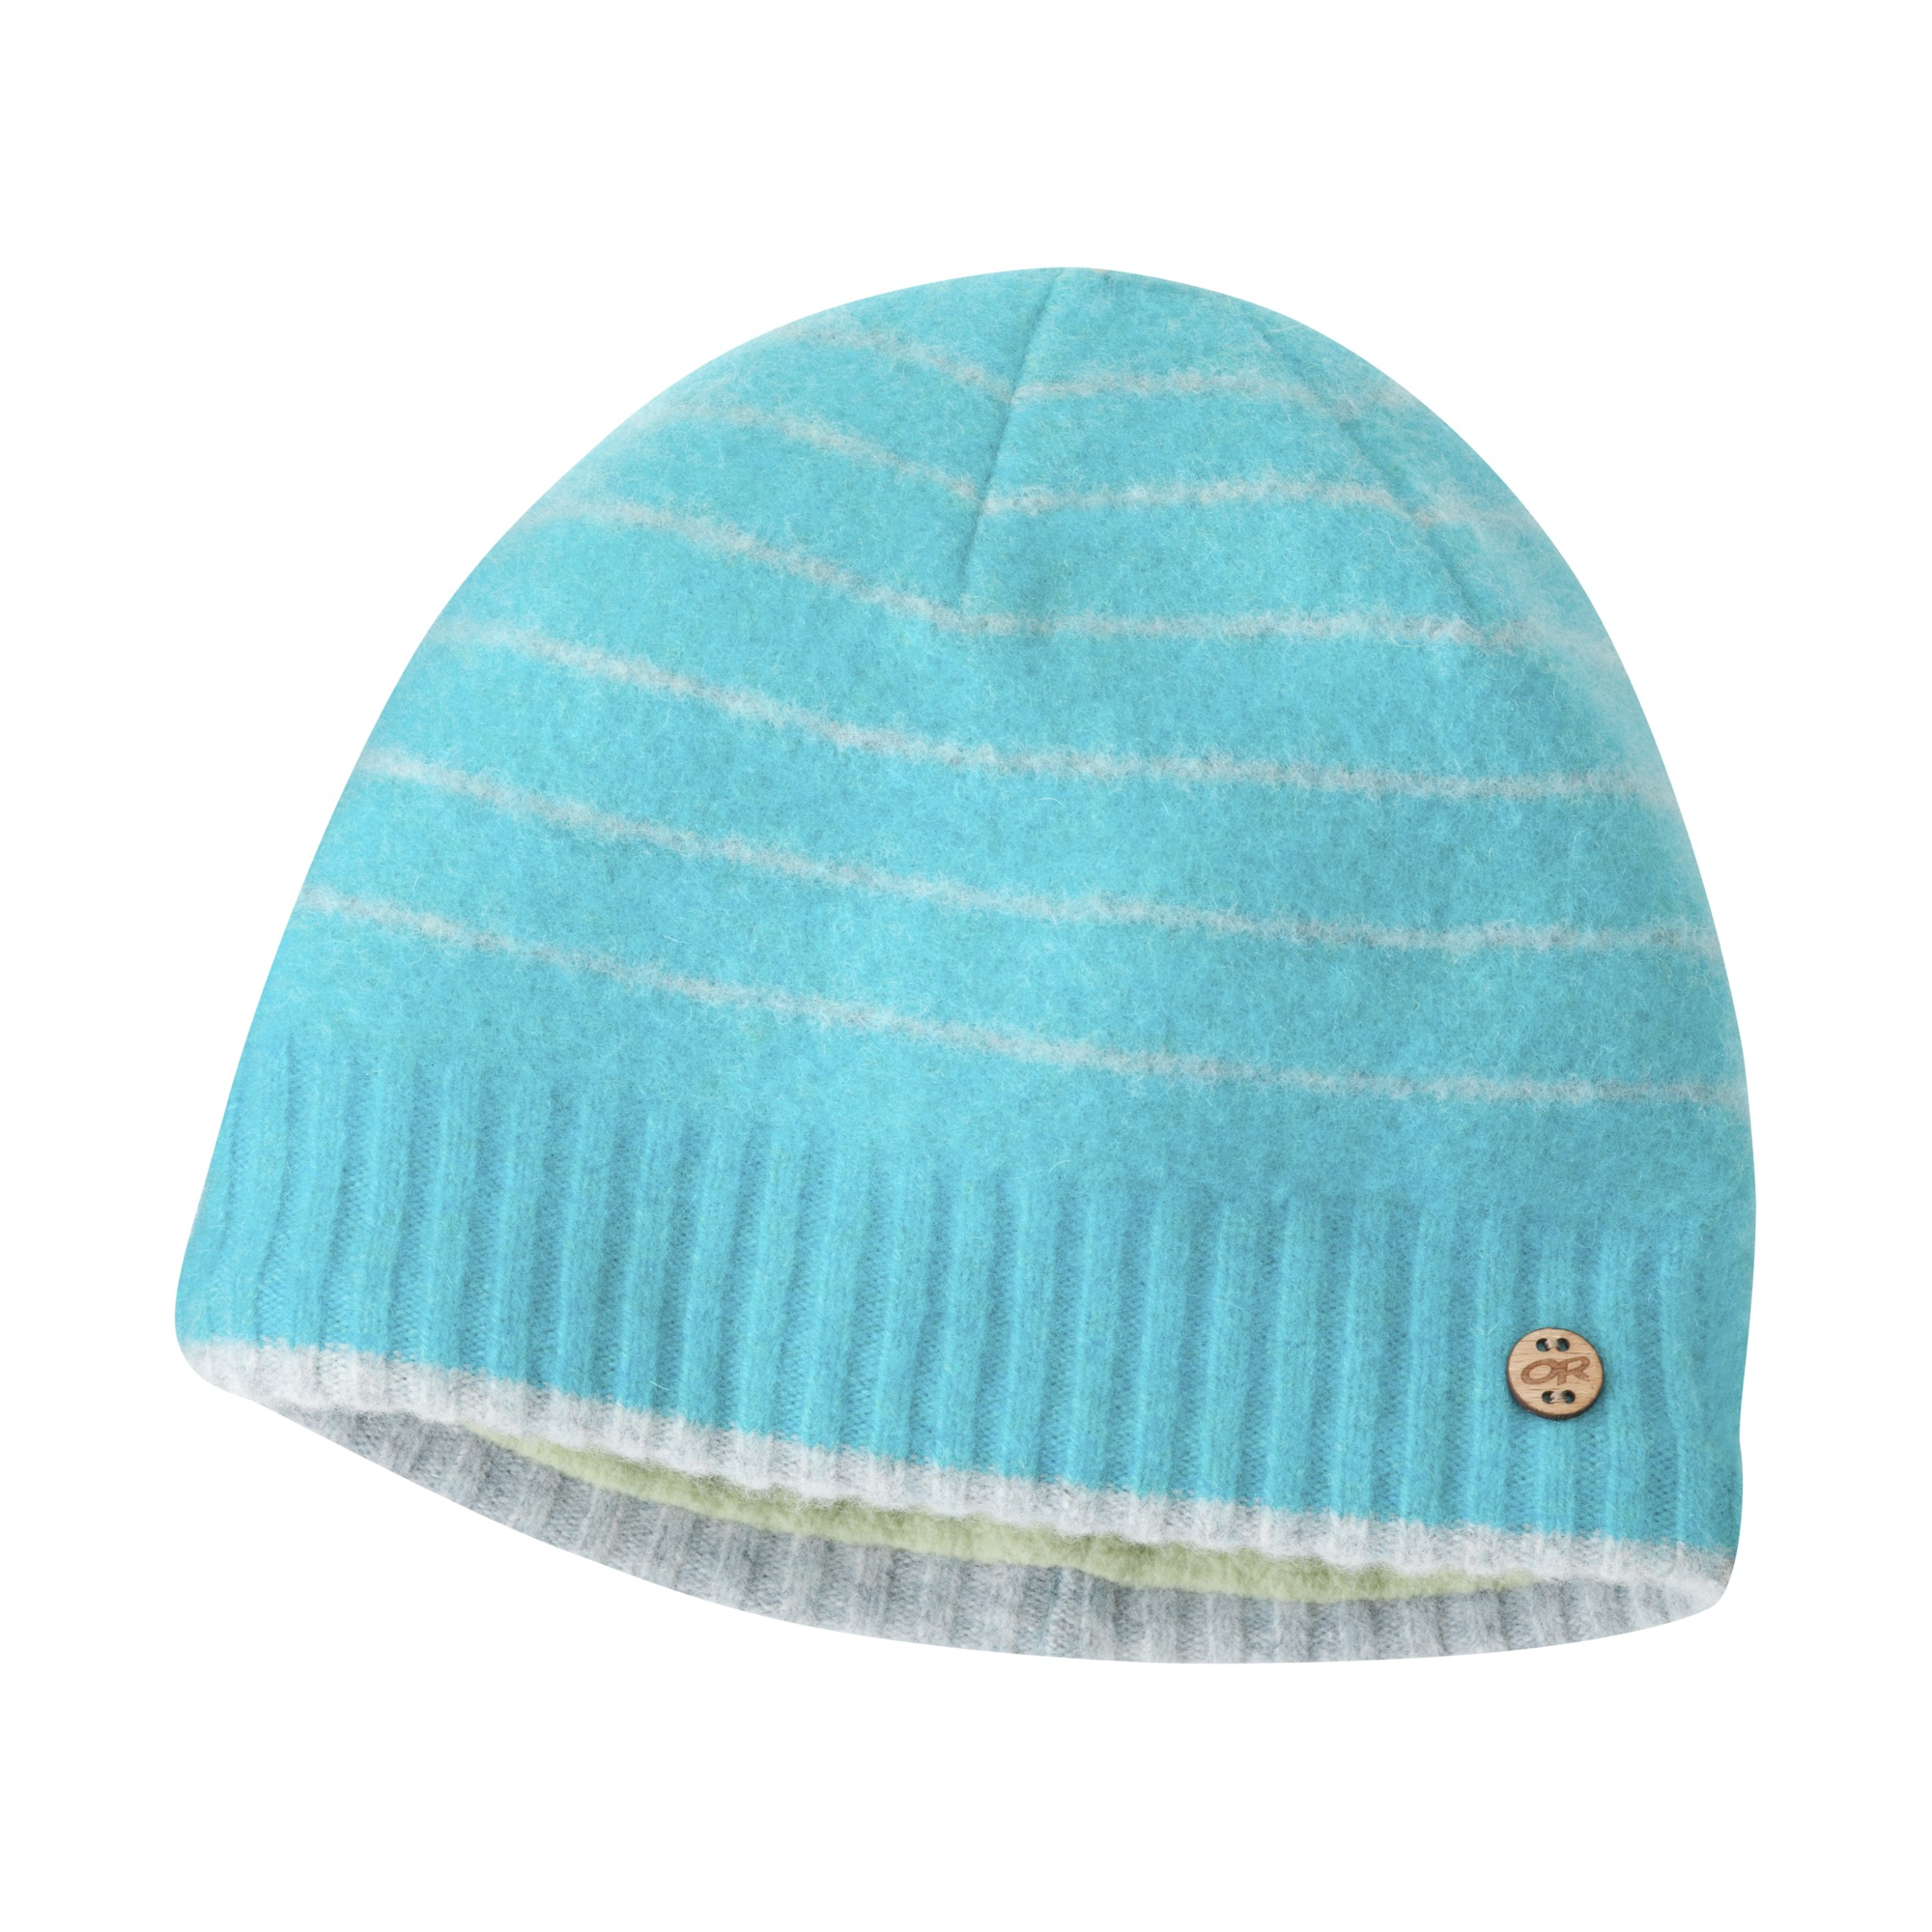 6579ced2f Women's Trista Beanie™ - typhoon | Outdoor Research